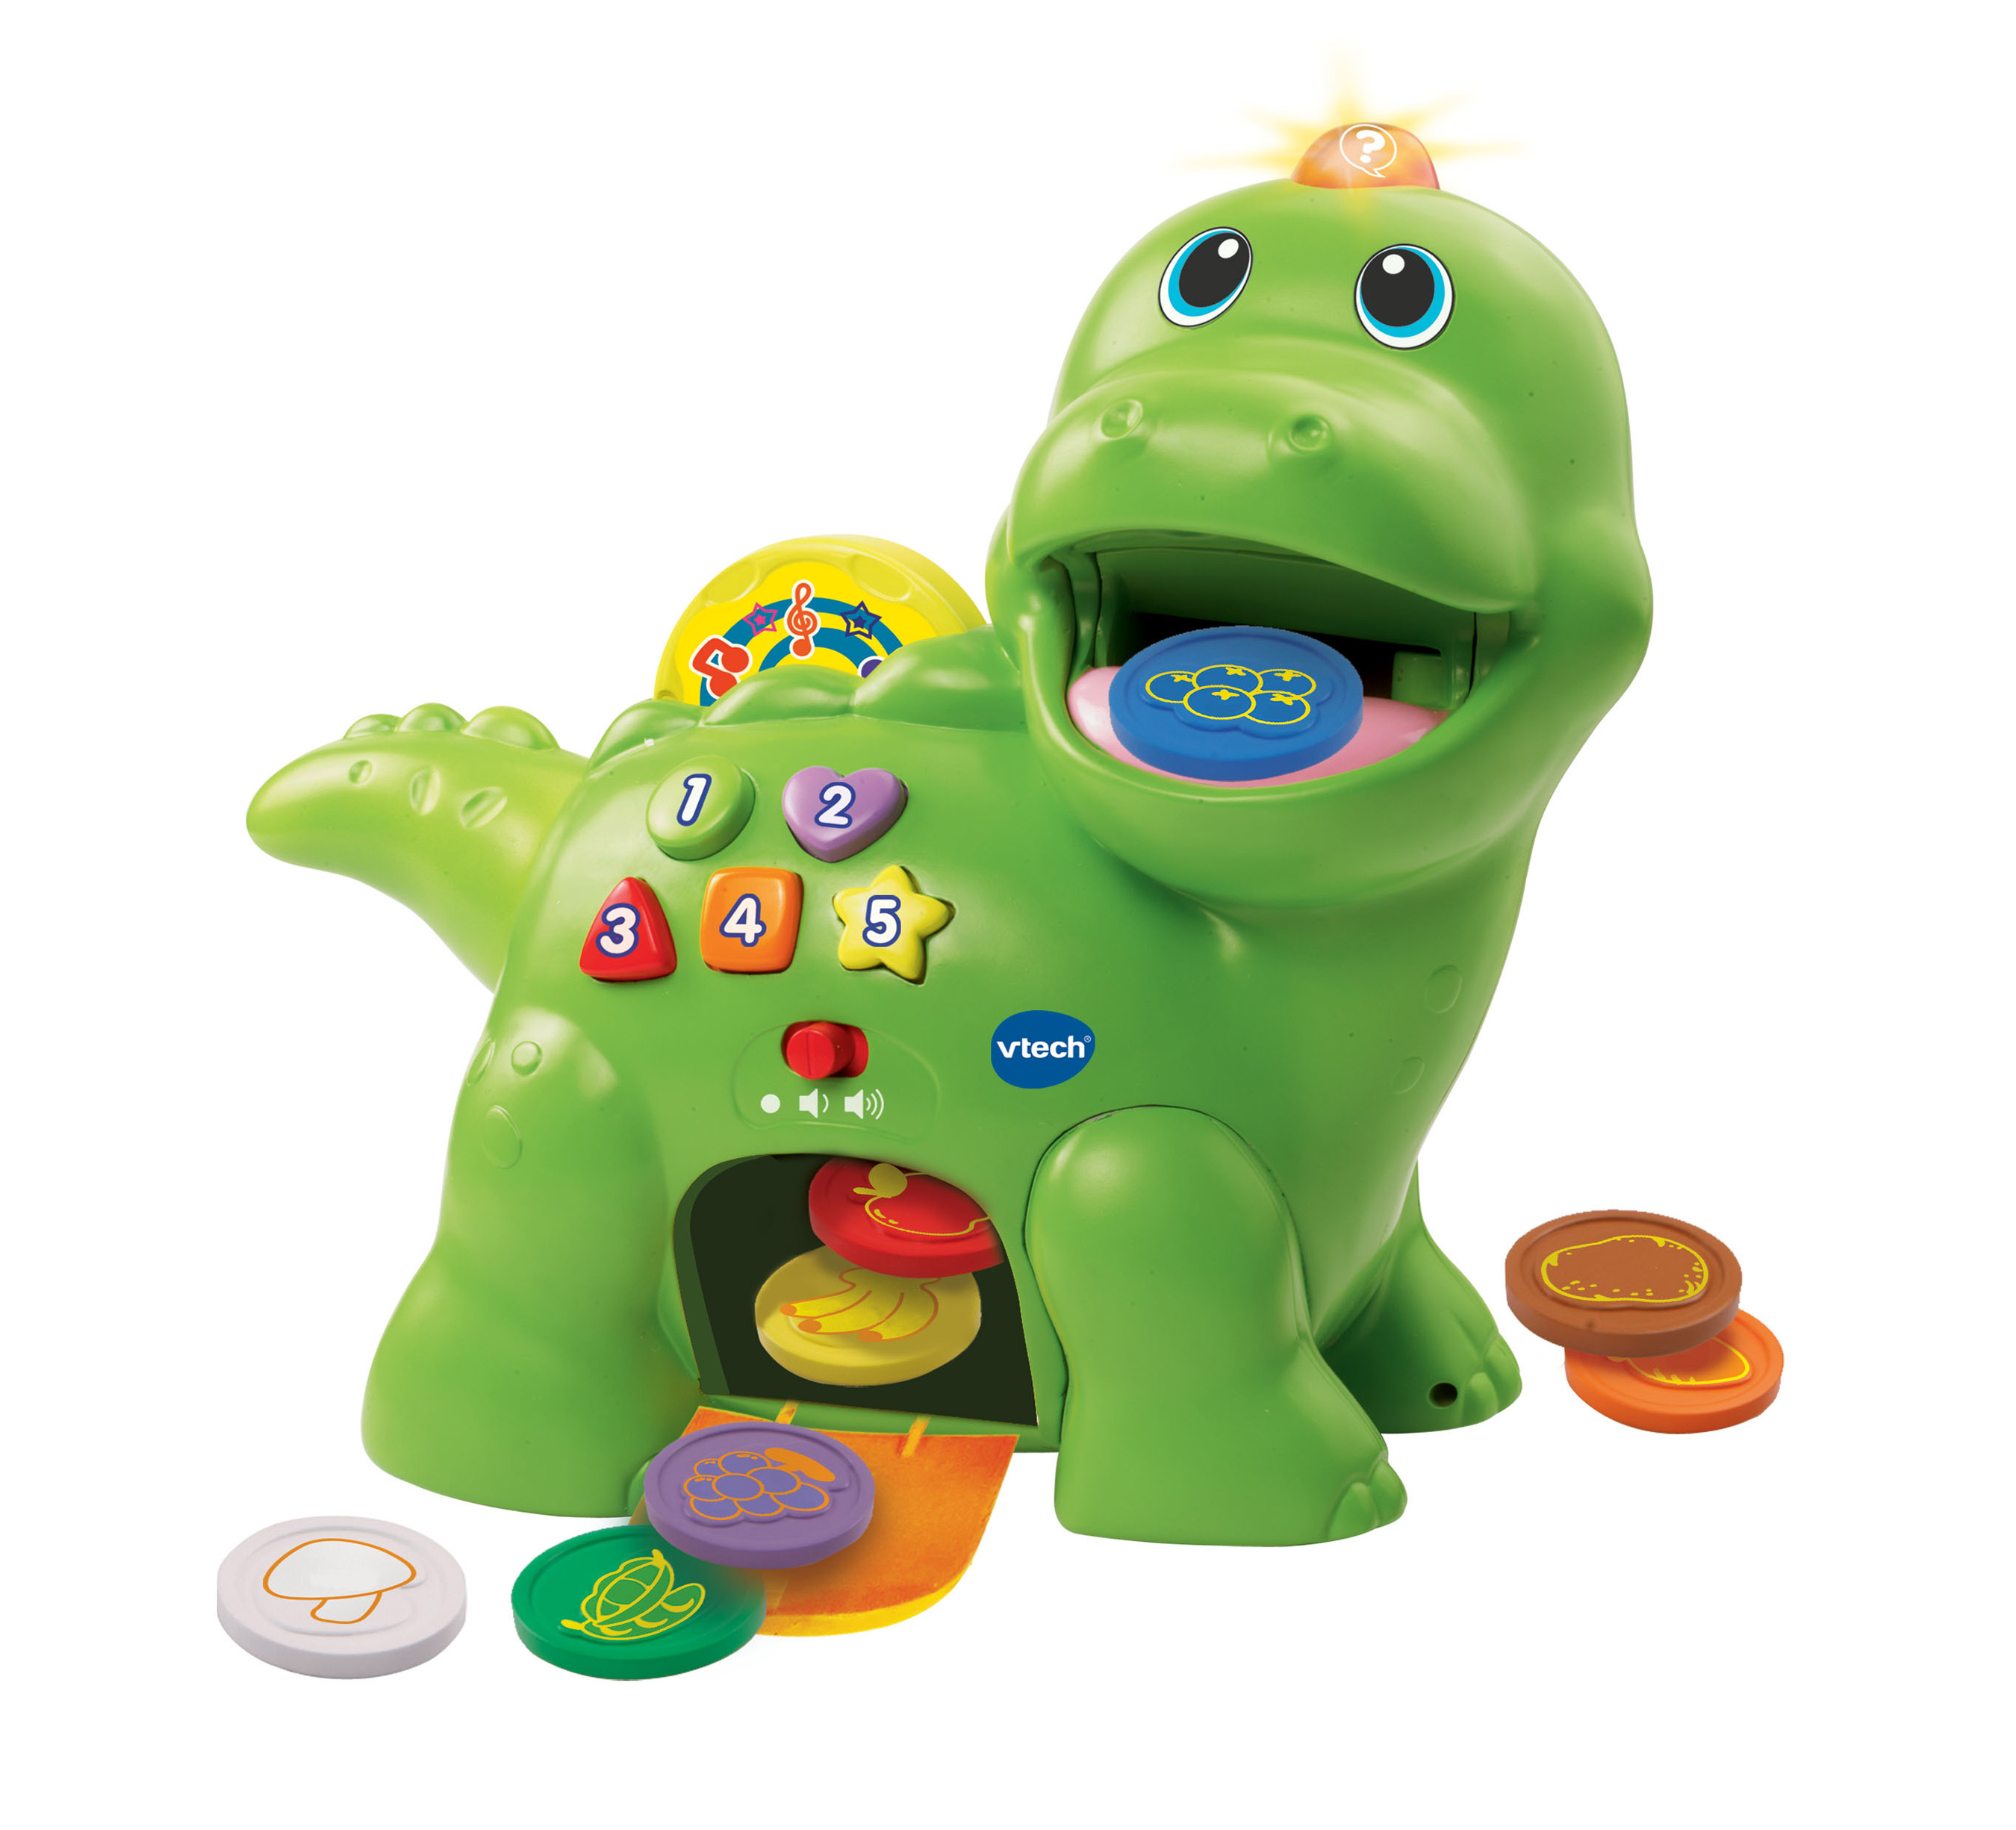 http://www.multivu.com/players/English/7215952-vtech-s-new-expert-supported-learning-products-for-infant-and-preschool-line/gallery/image/7dd5b686-a21c-46f5-9ef4-95bdc013434c.HR.jpg